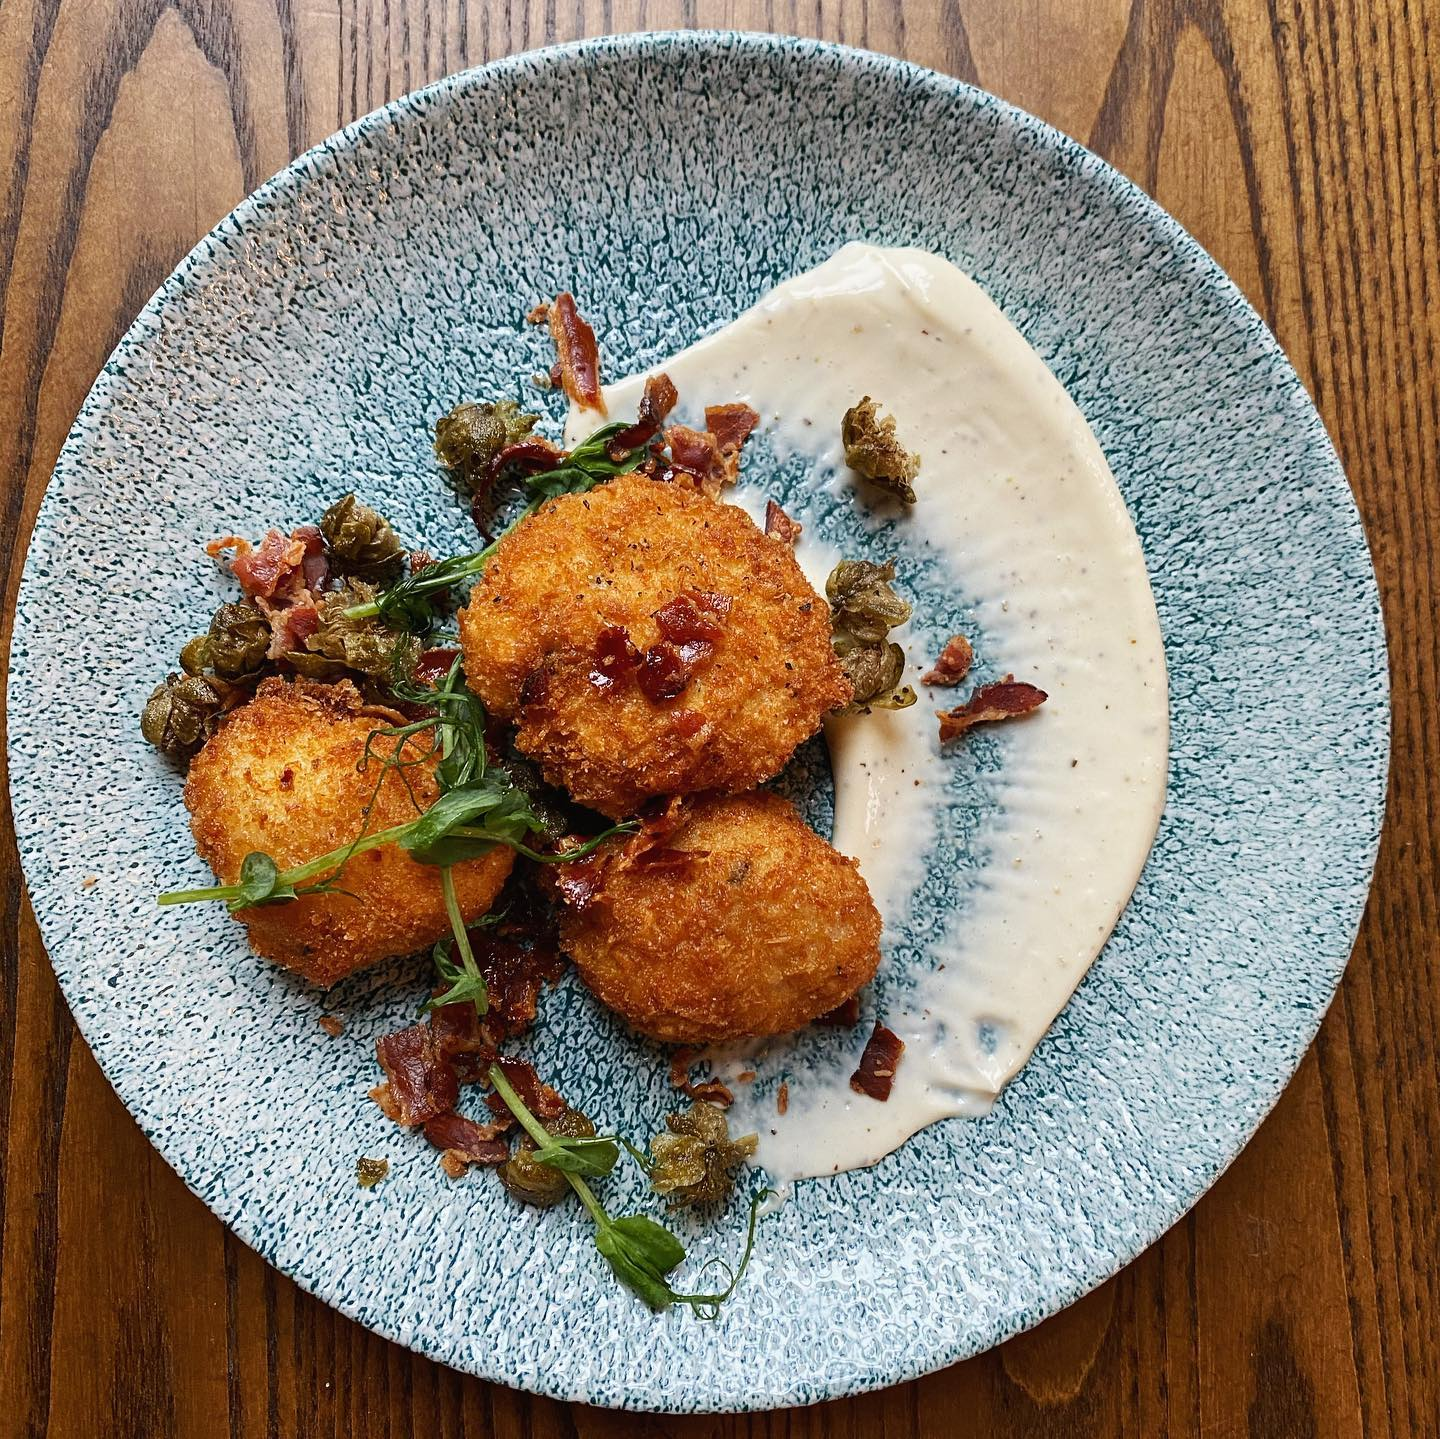 Anyone else getting over-excited about the thought of eating out again? 😋  Let us whet your appetite with a few more tasty small plates destined for the menu in the near future 😋 🍽🦙🍽🦙🍽🦙🍽🦙 #foodiesofinstagram #londonpubs #smallplates #codcheeks #newmenu #islington #islingtonpubs #pubsofinstagram #londonpubs #foodphotography #foodporn